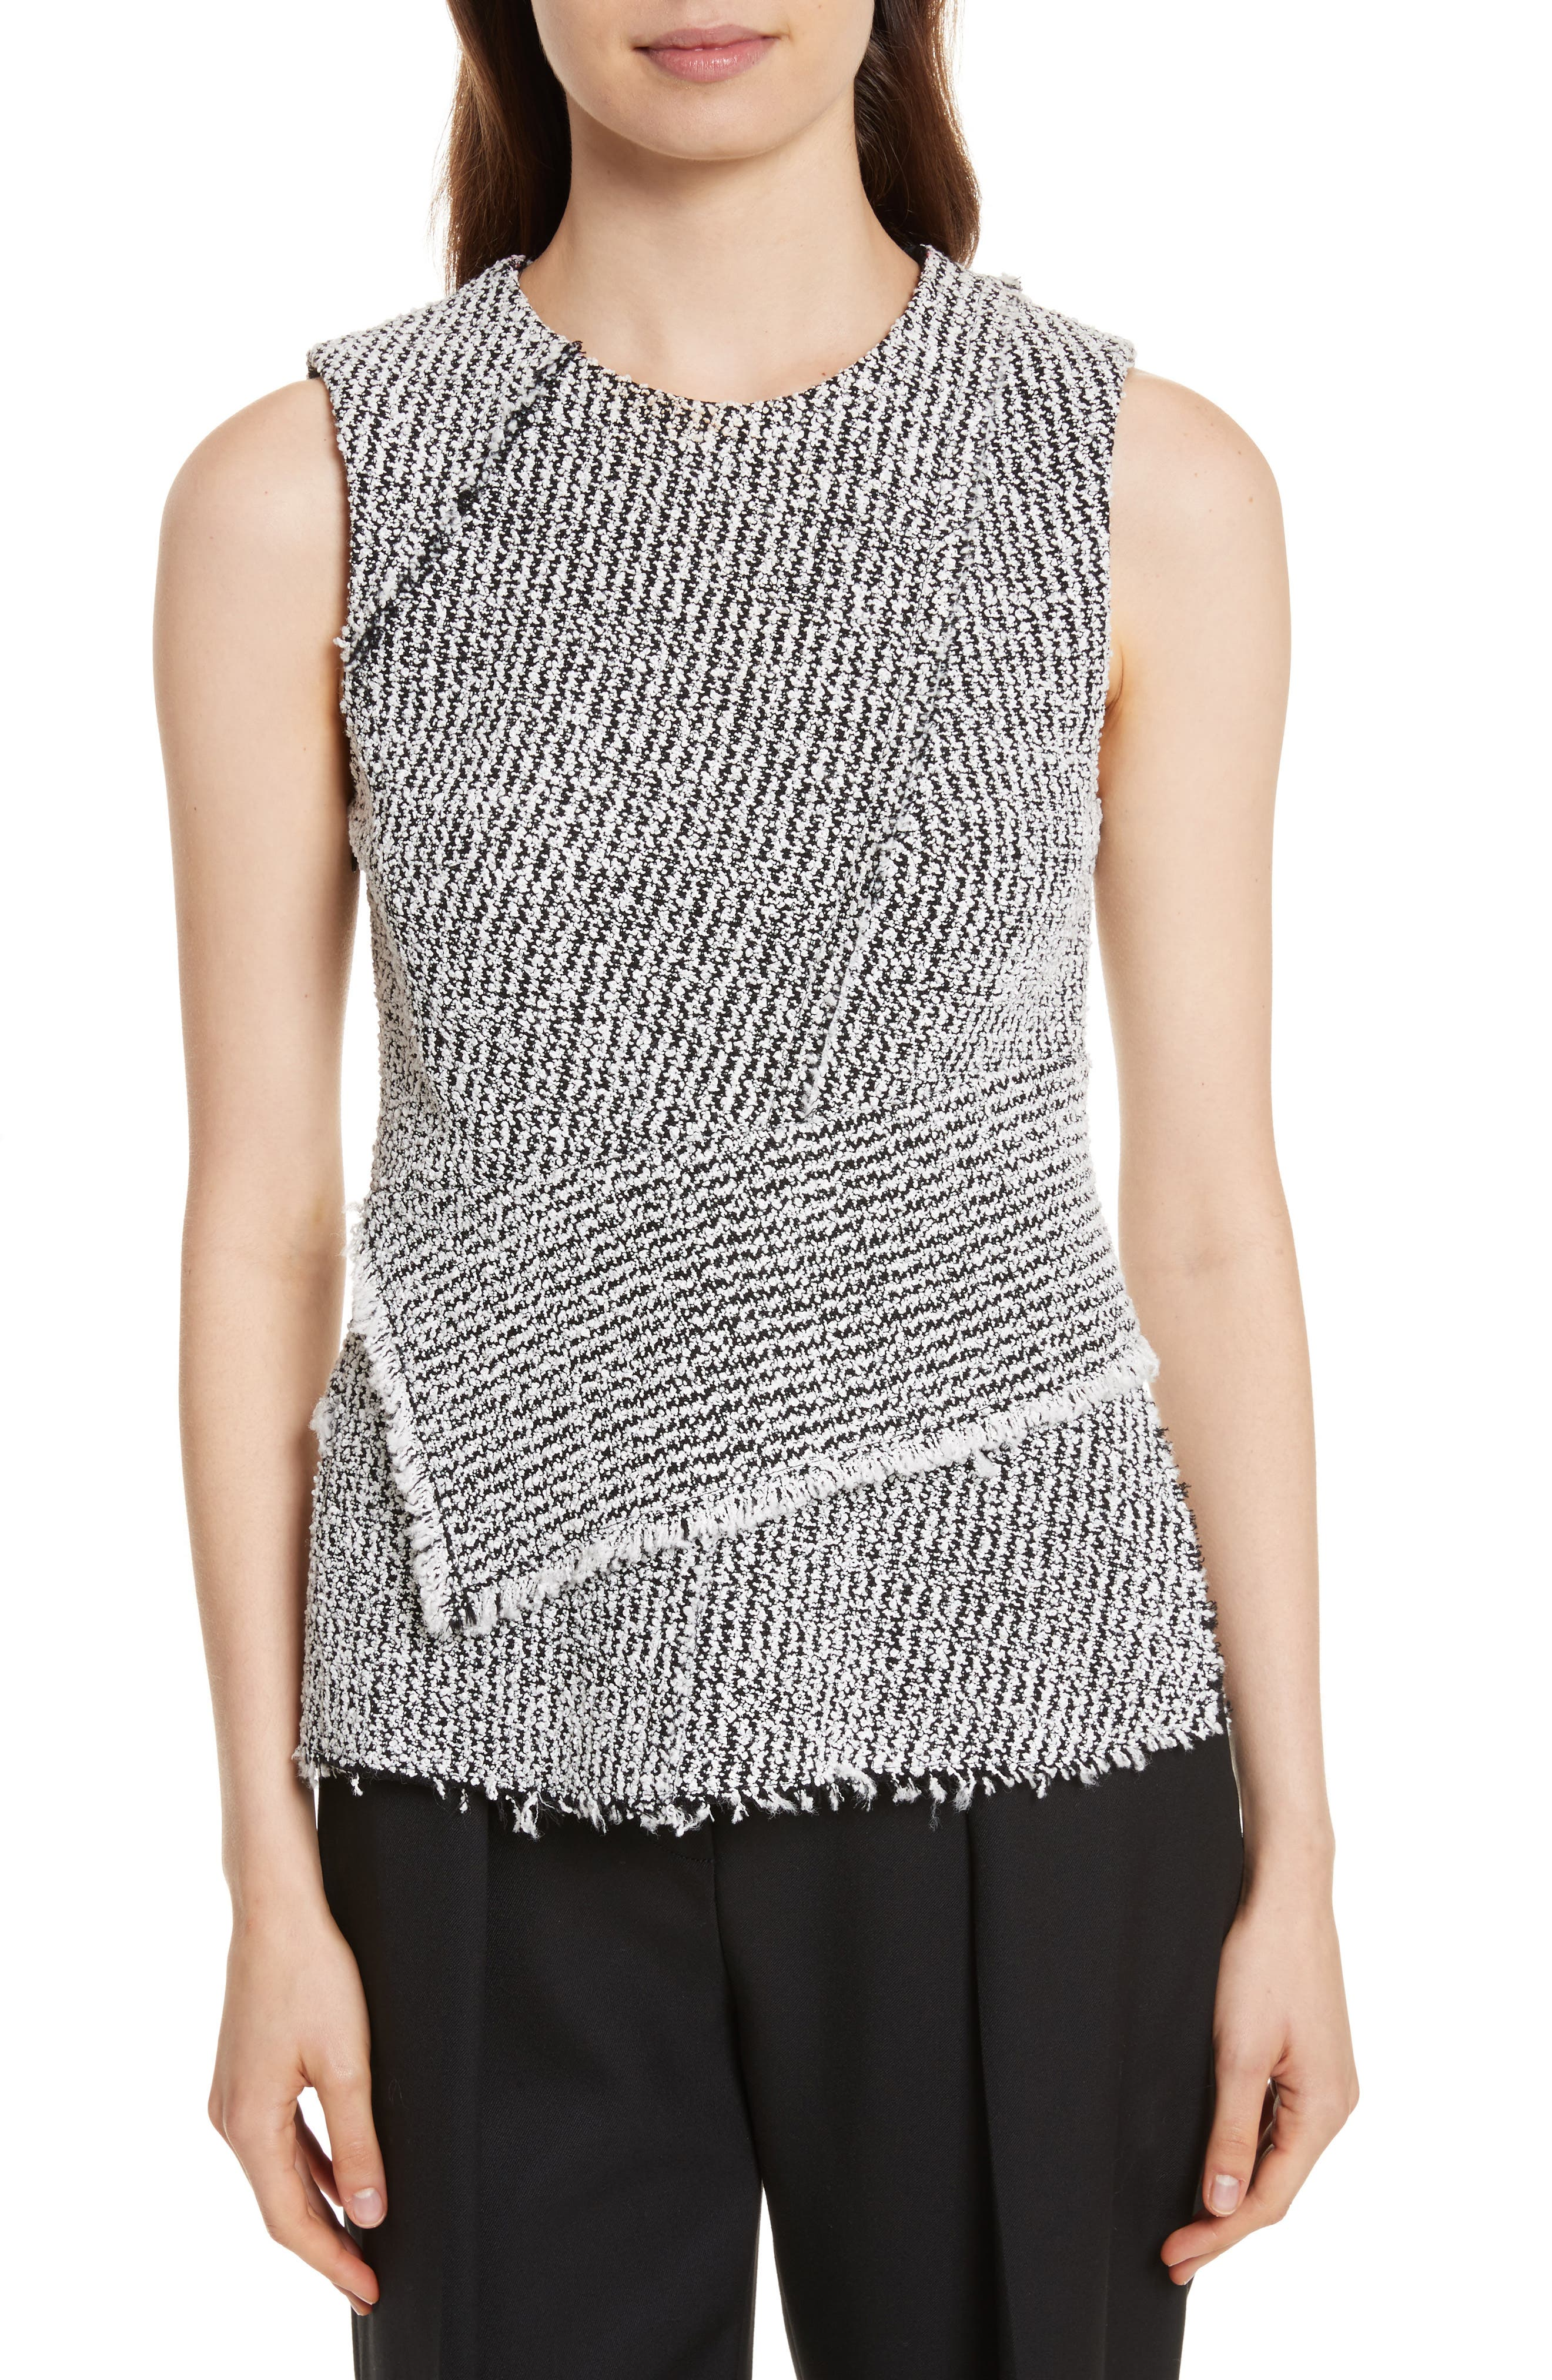 3.1 Phillip Lim Knit Wrap Top